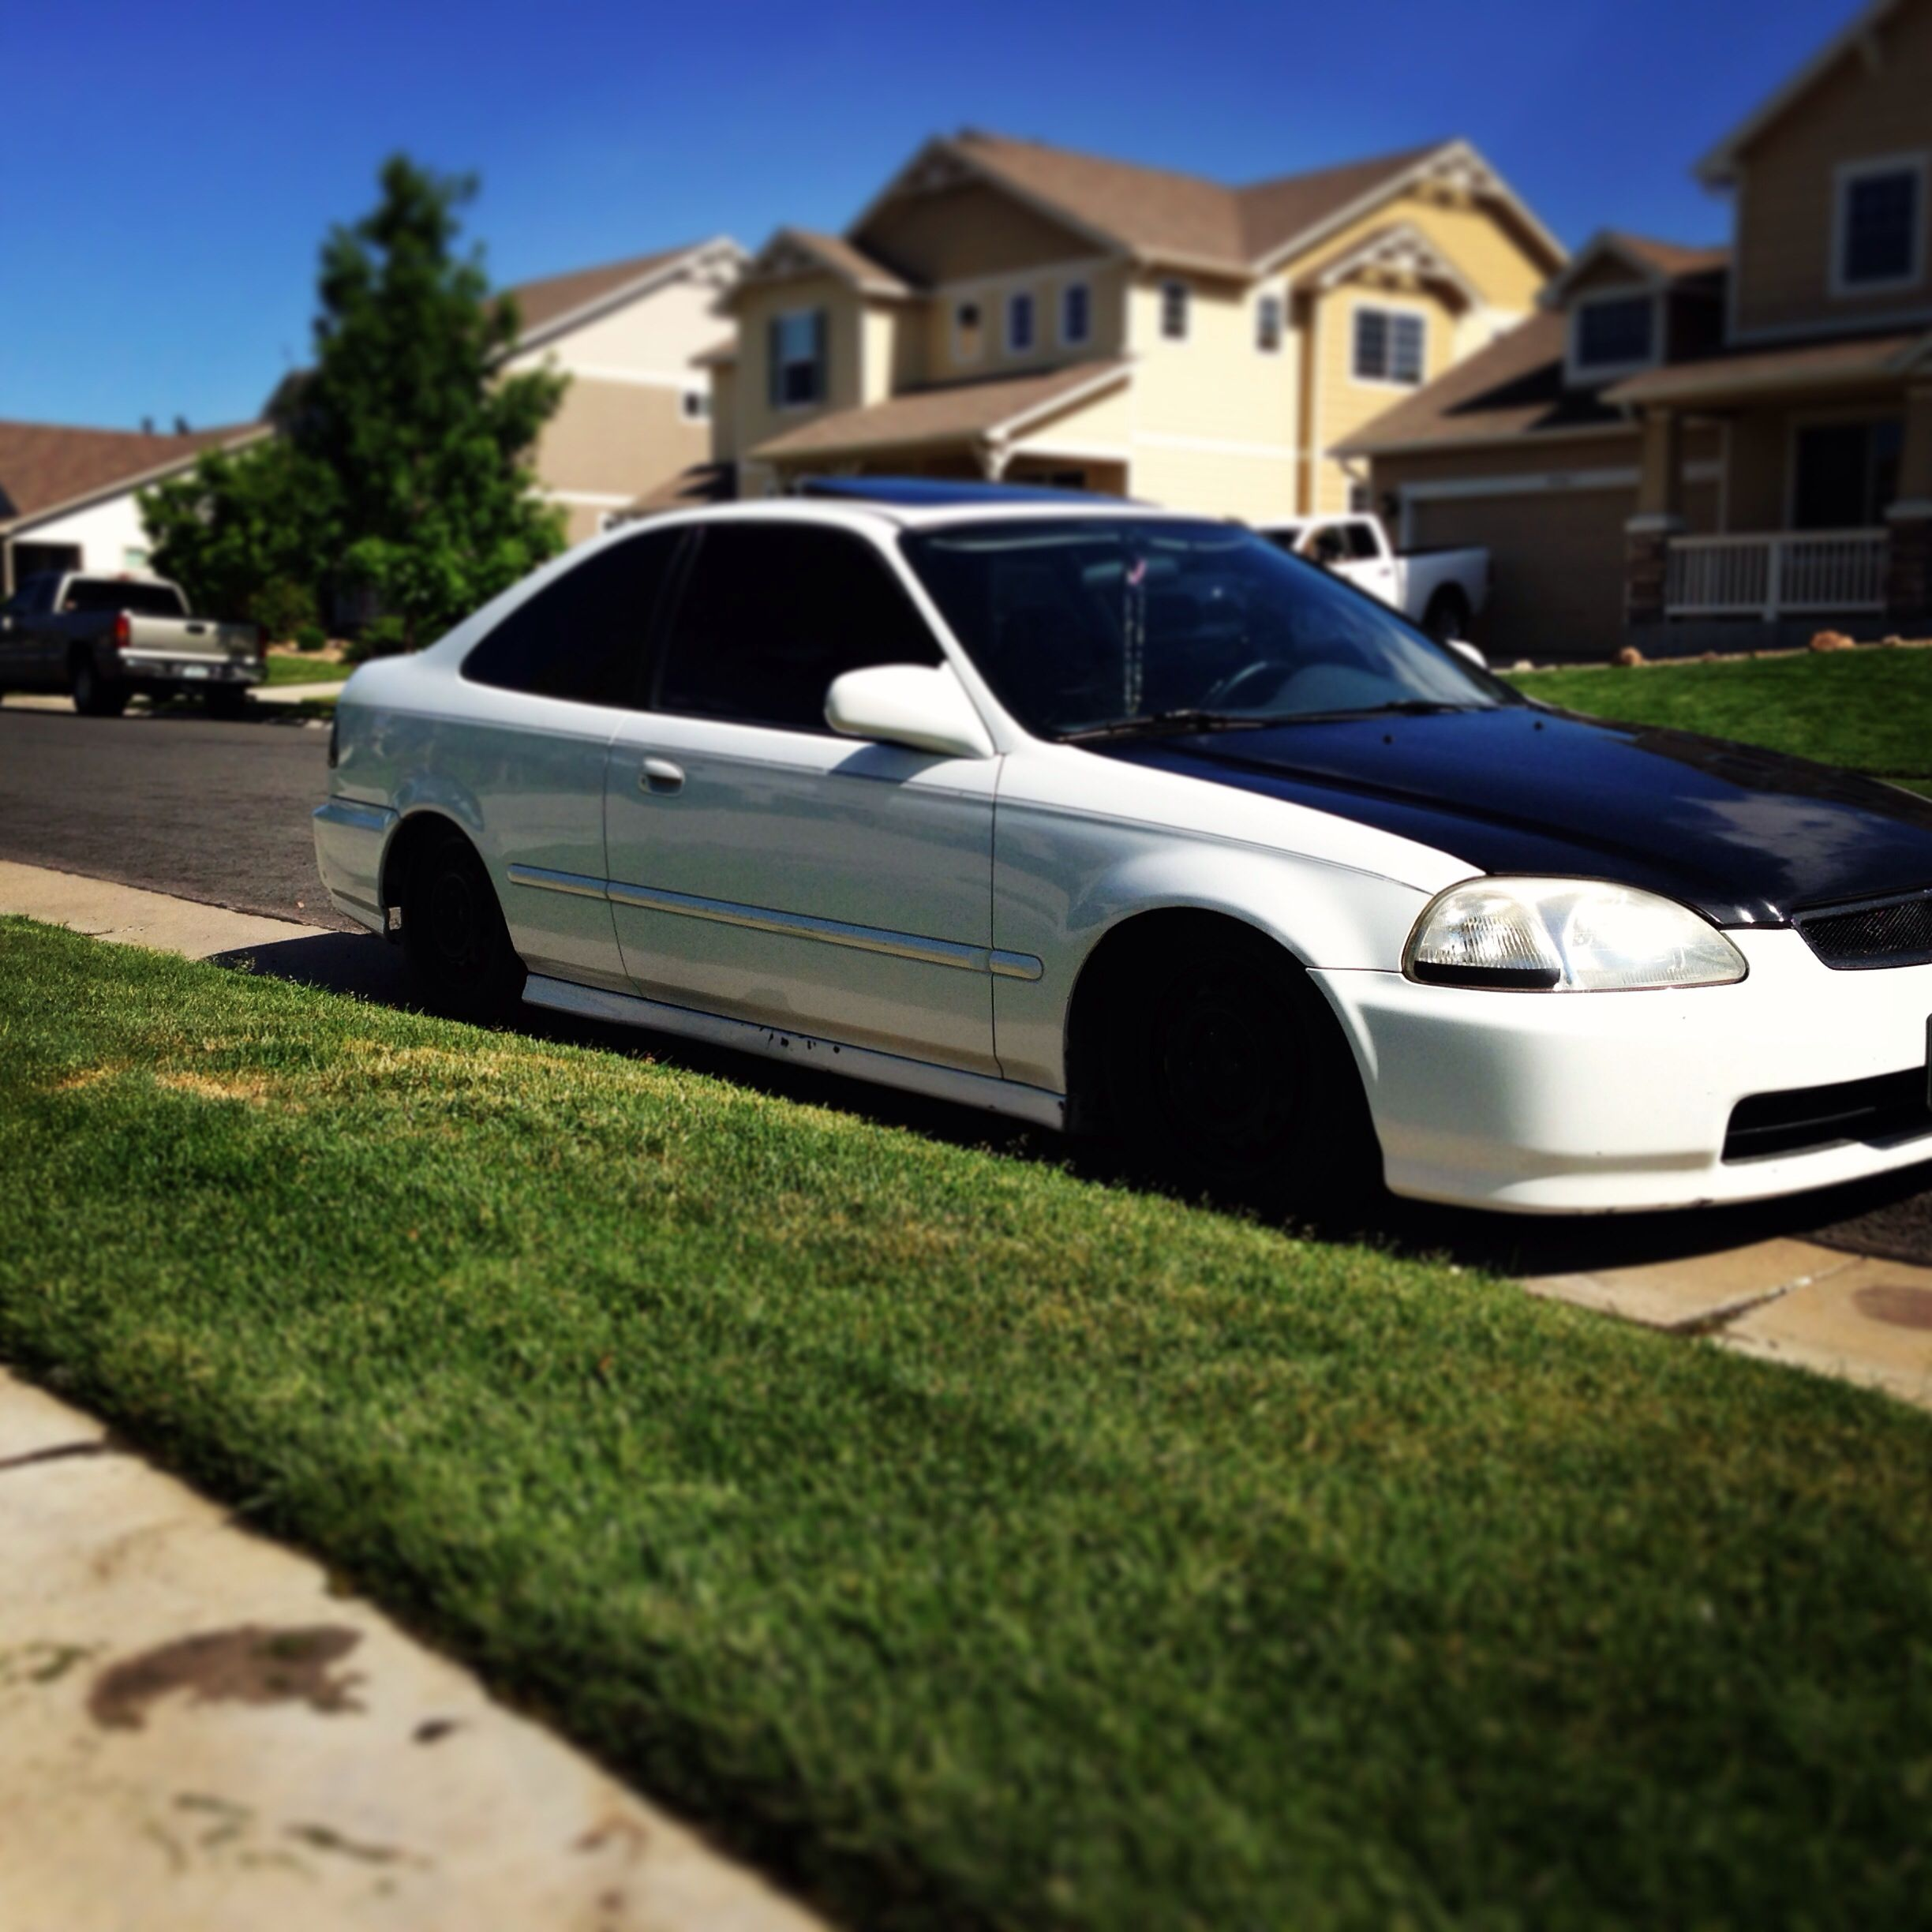 96 Honda Civic Ej8 Honda Civic Civic Honda